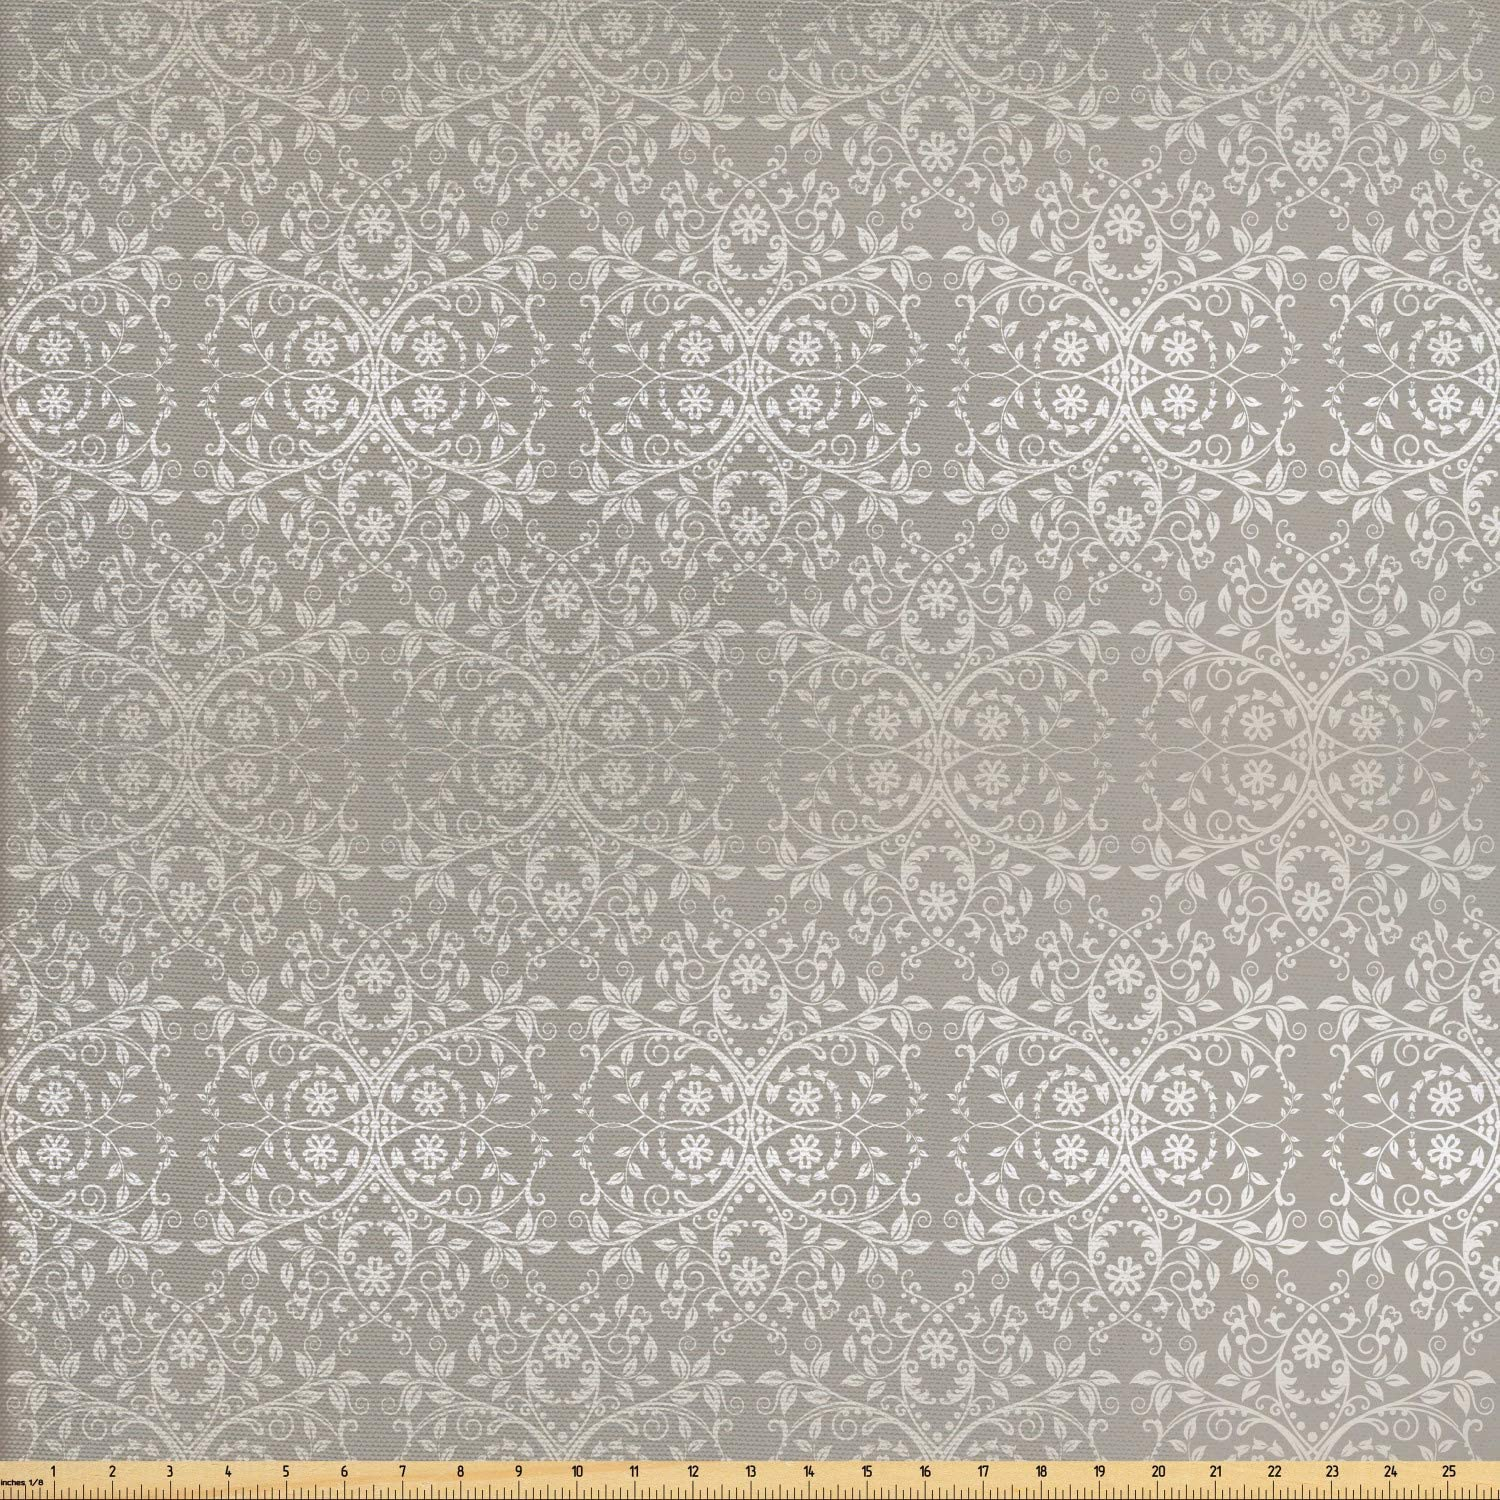 Ambesonne Grey Fabric by The Yard, Victorian Lace Flowers and Leaves Retro Background Old Fashioned Graphic, Decorative Fabric for Upholstery and Home Accents, 1 Yard, Warm Taupe